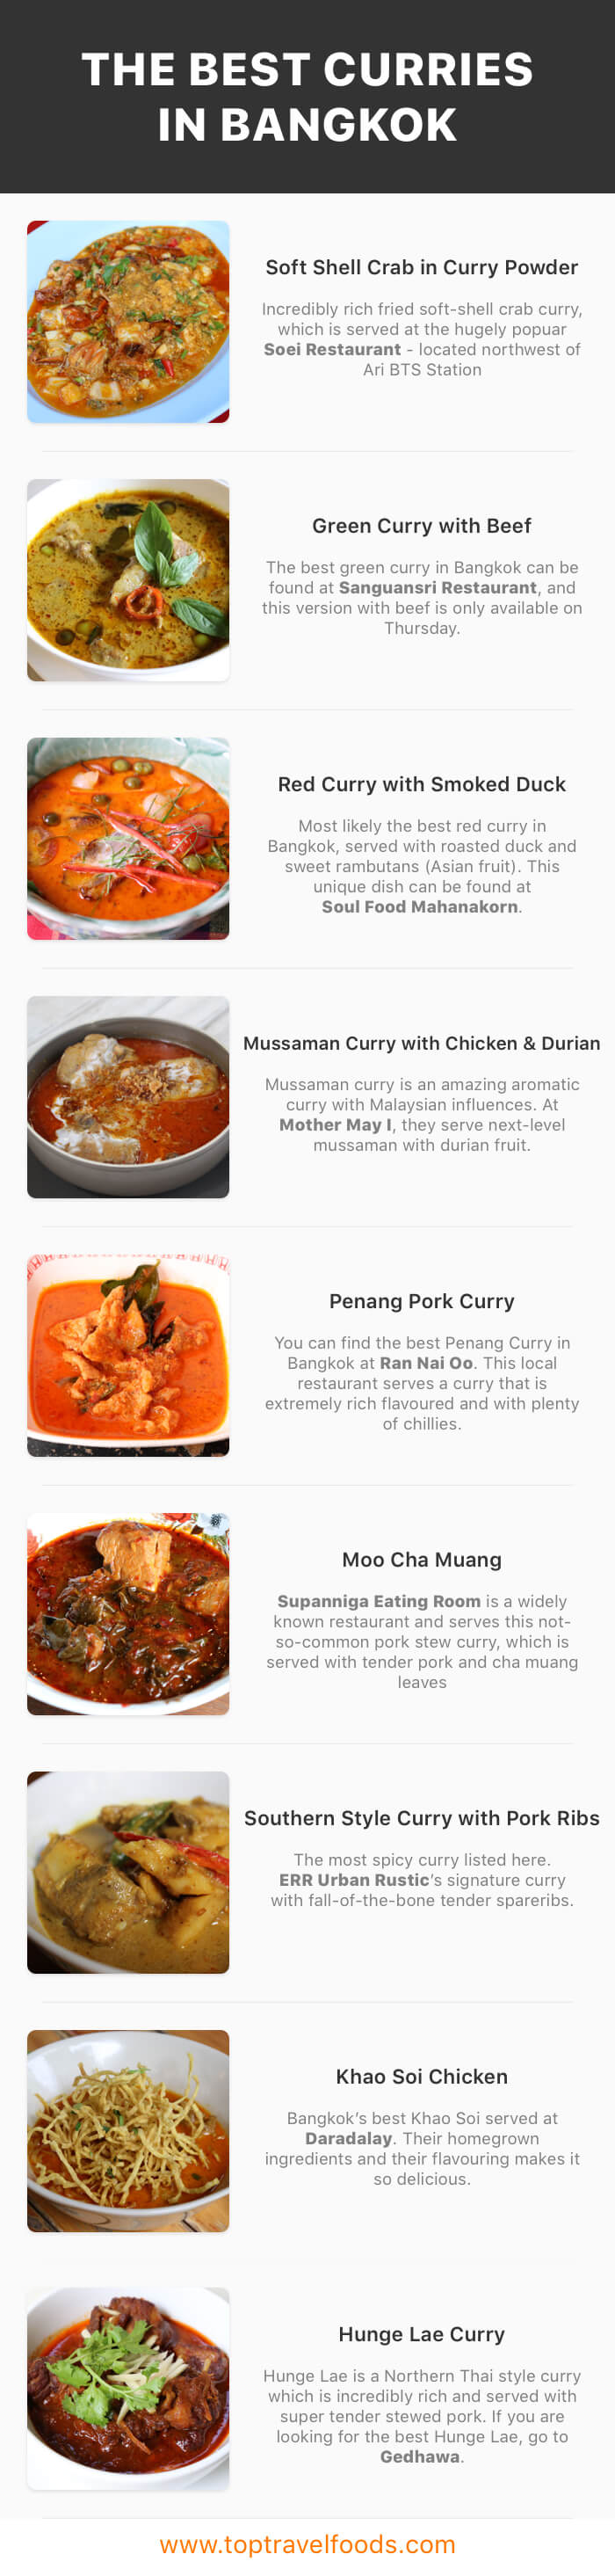 Best Curry In Bangkok Infographic